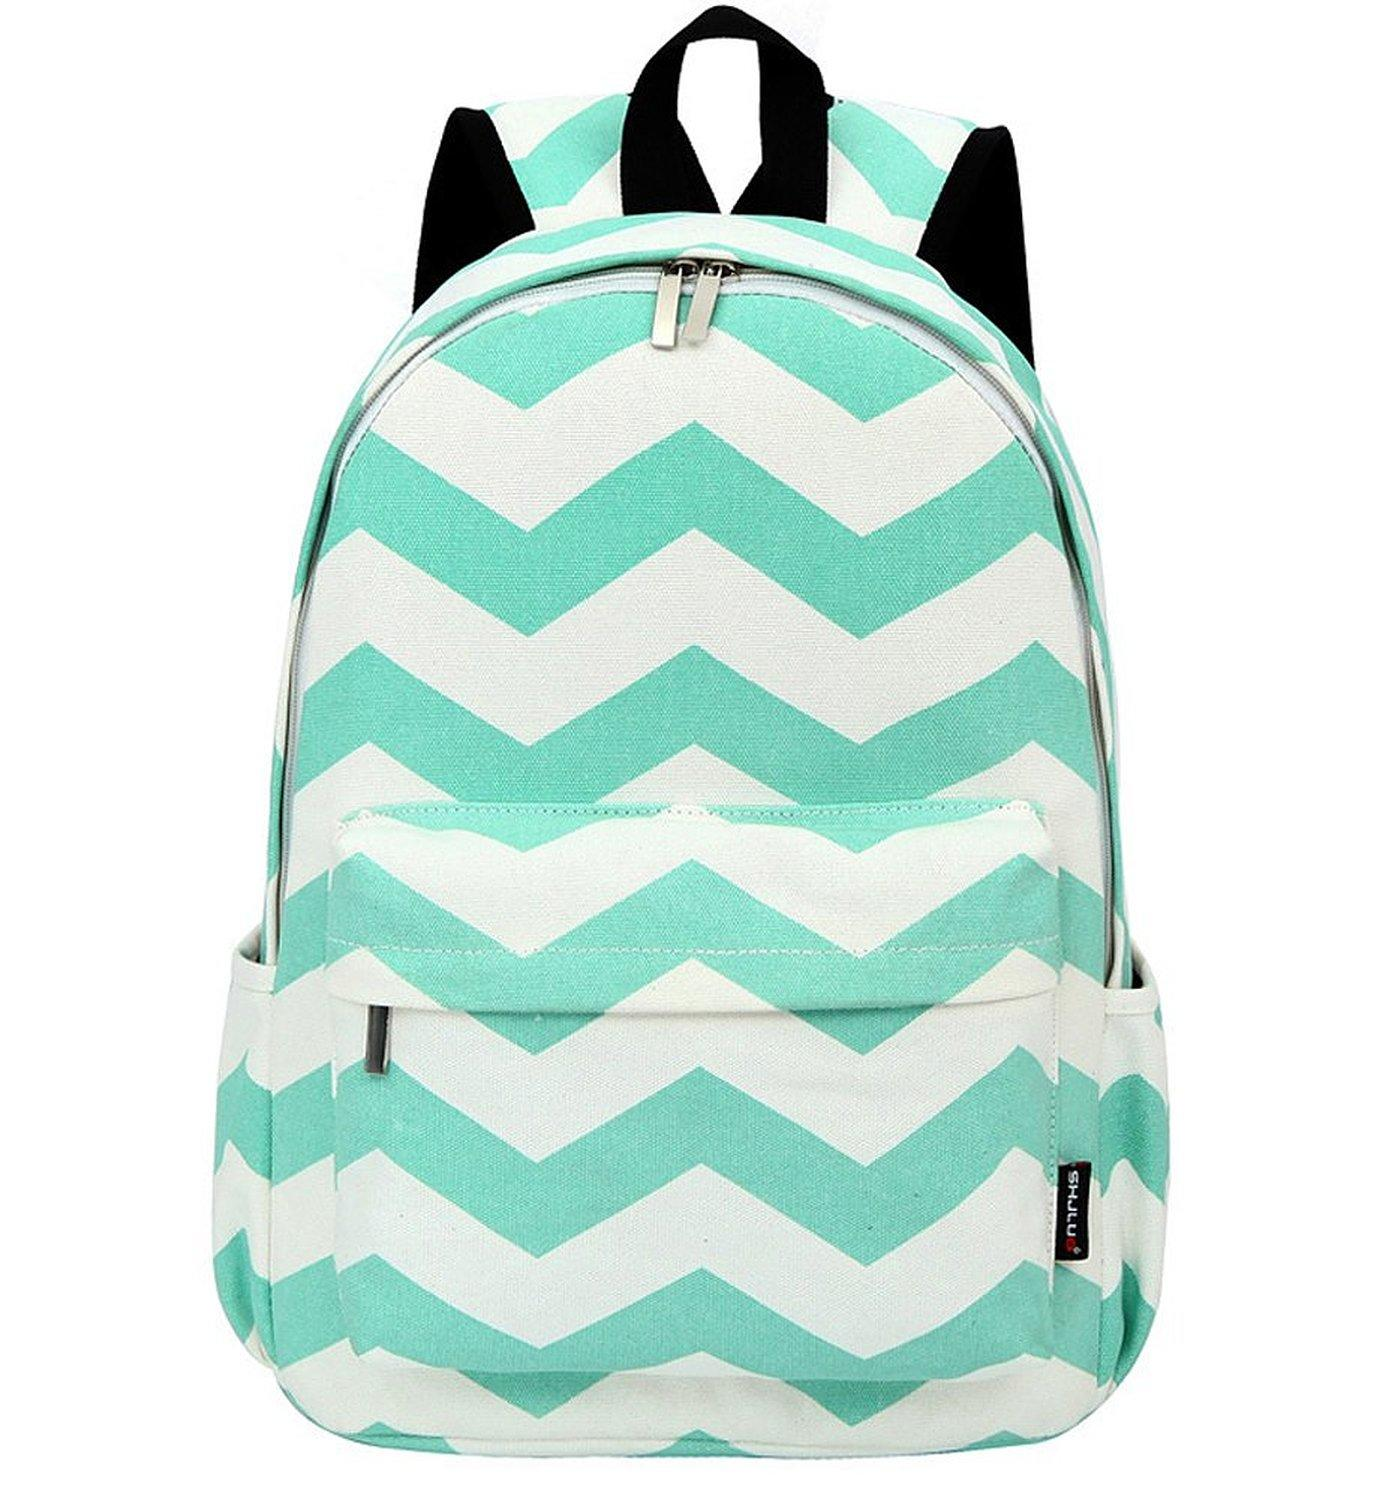 Cute Backpacks With Laptop Compartment WUS92fGm